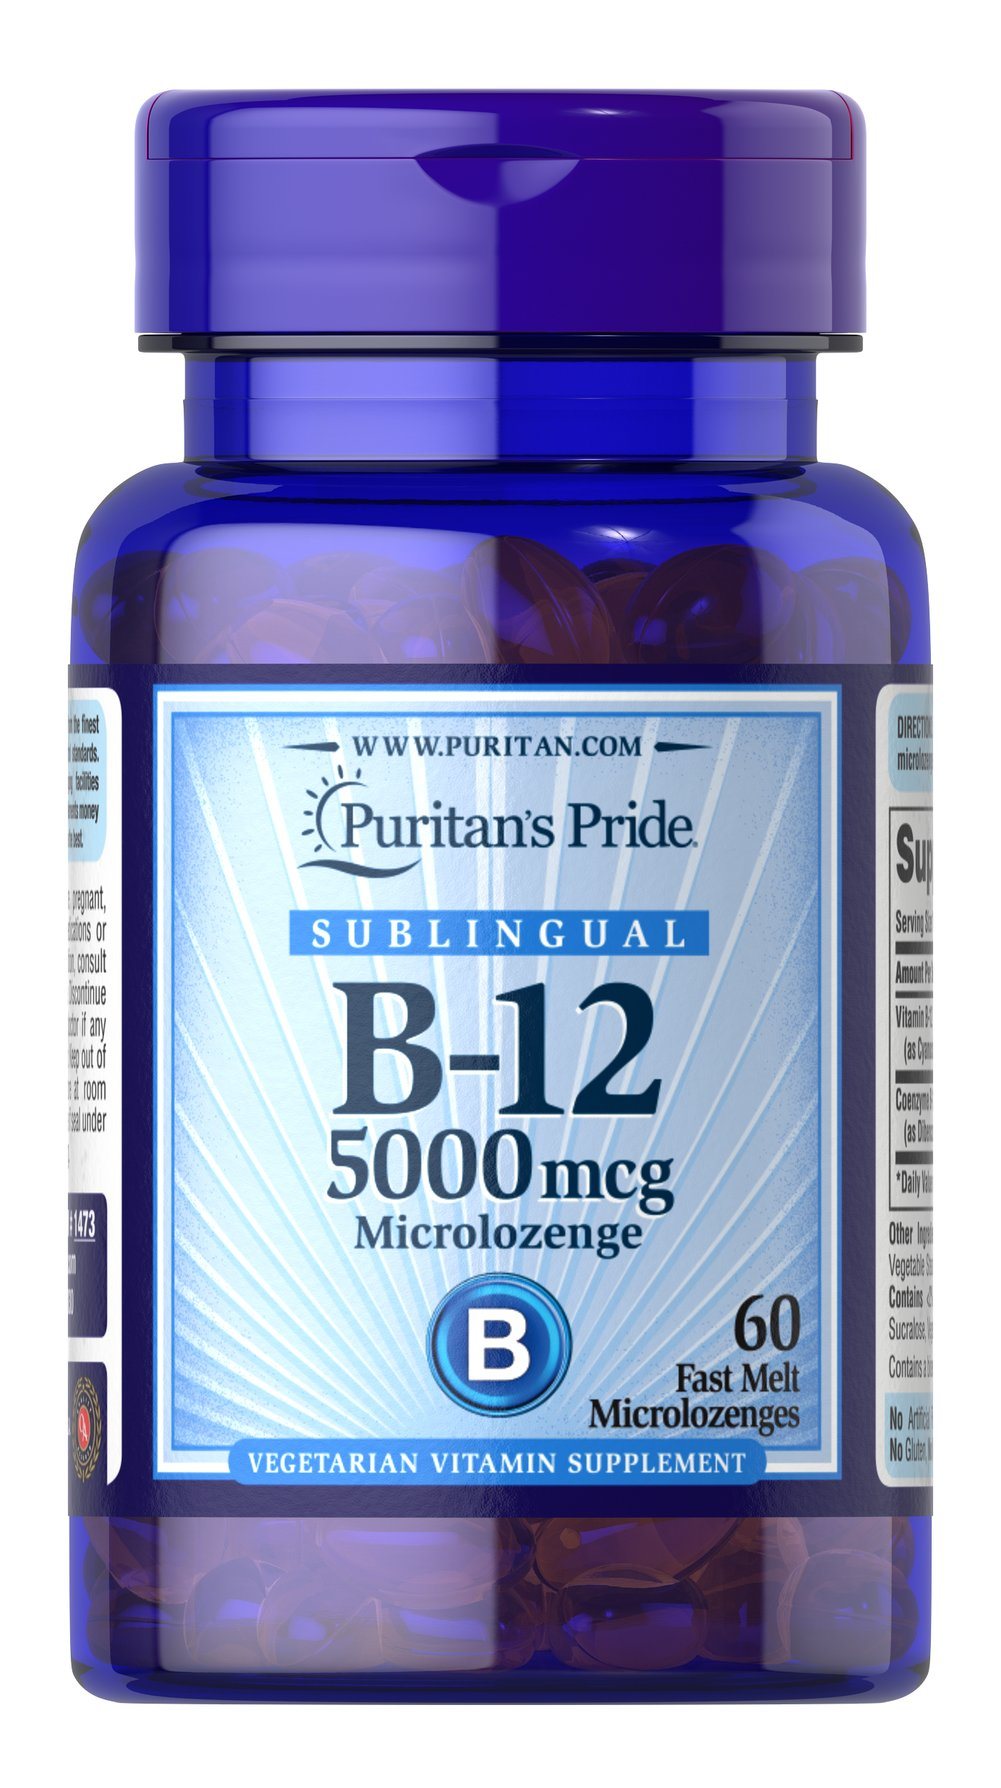 Vitamin B-12 5000 mcg Sublingual Thumbnail Alternate Bottle View